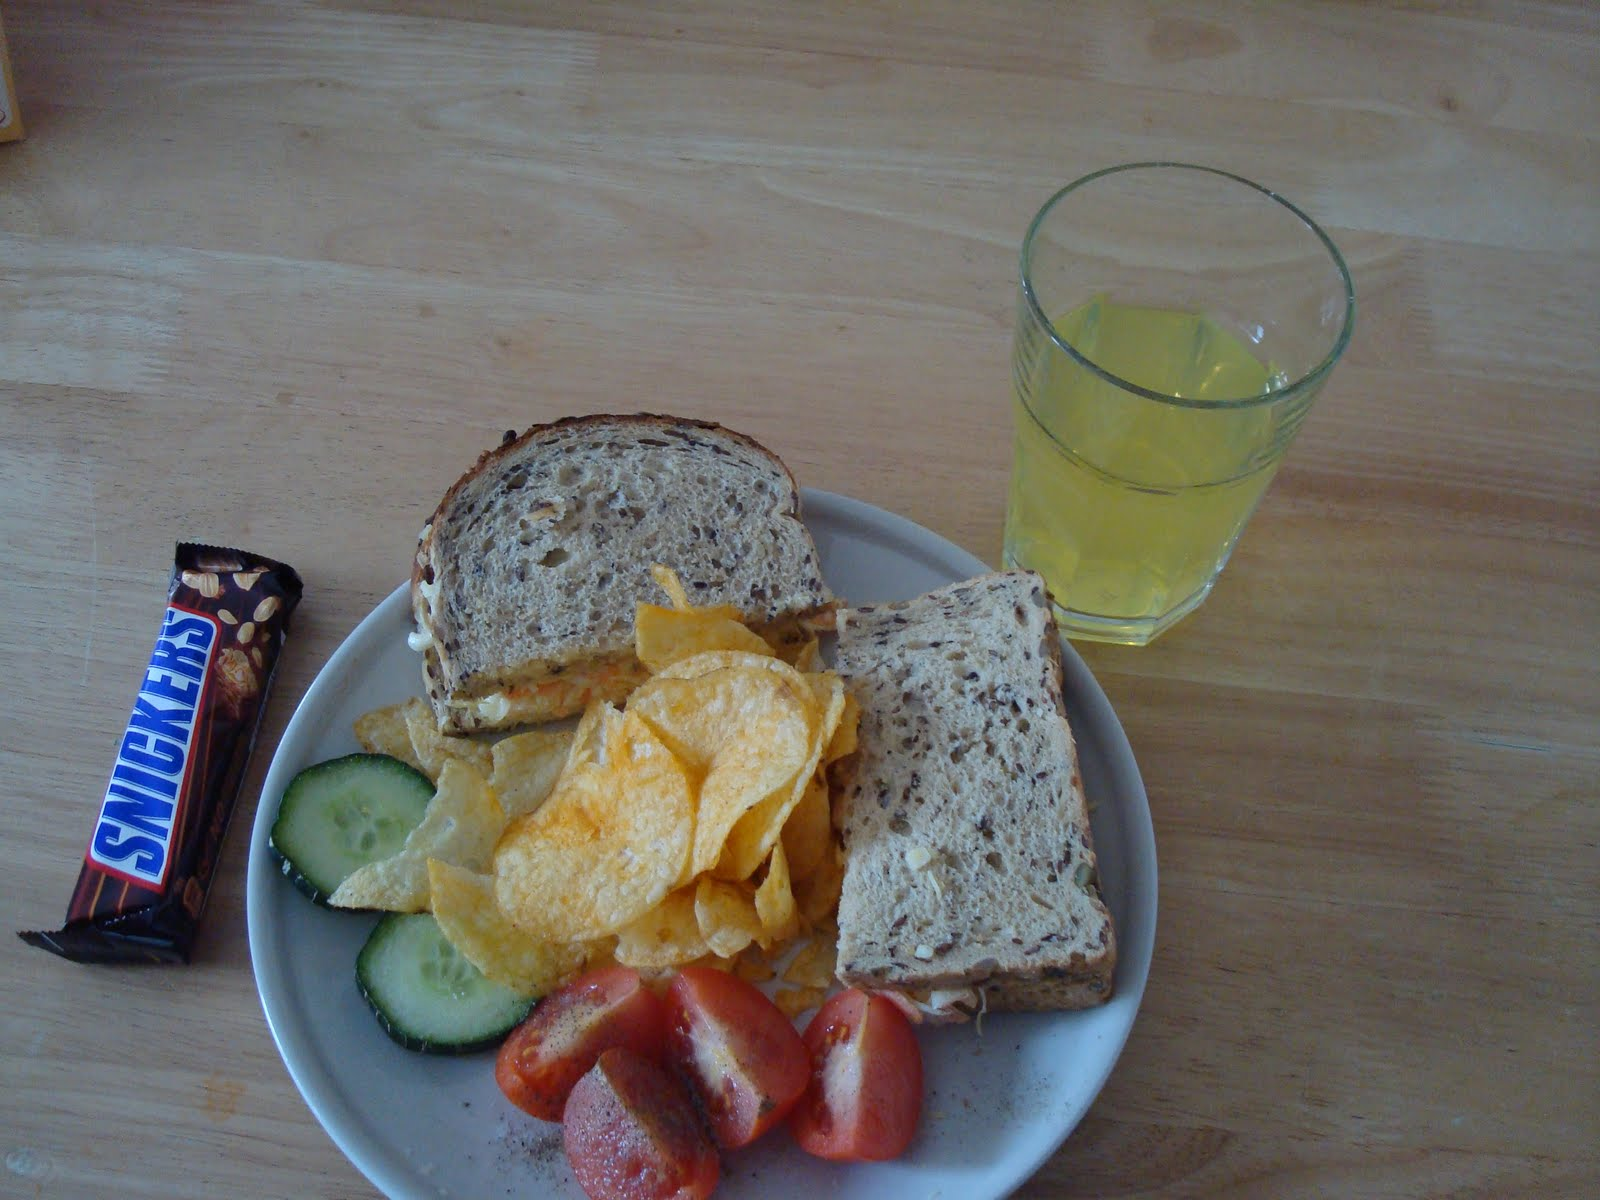 Bacon Sandwich, Chees and Homemade coleslaw Sandwich